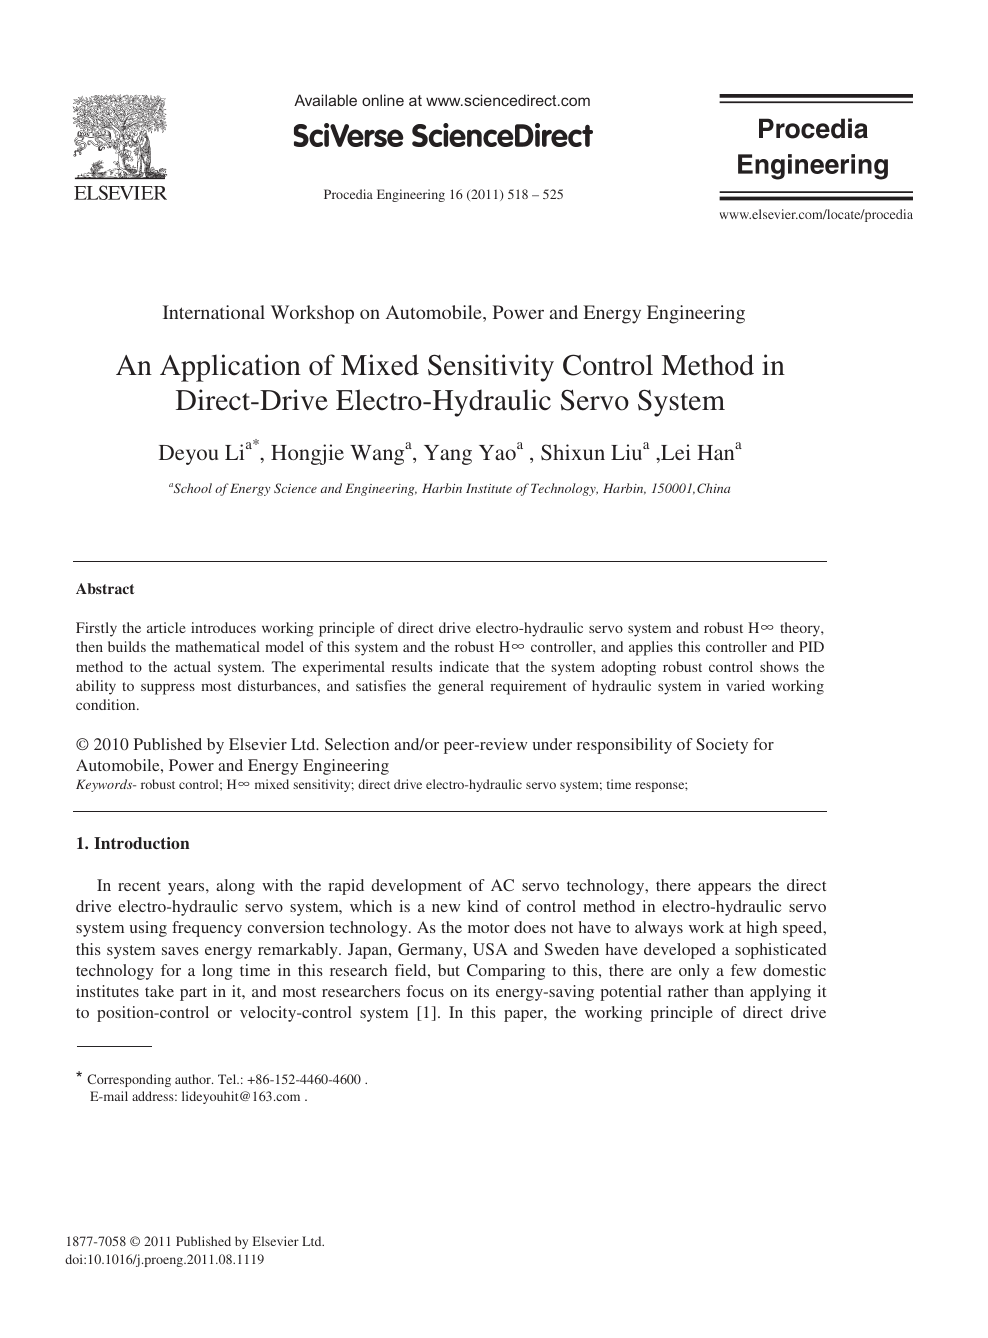 An Application of Mixed Sensitivity Control Method in Direct-Drive